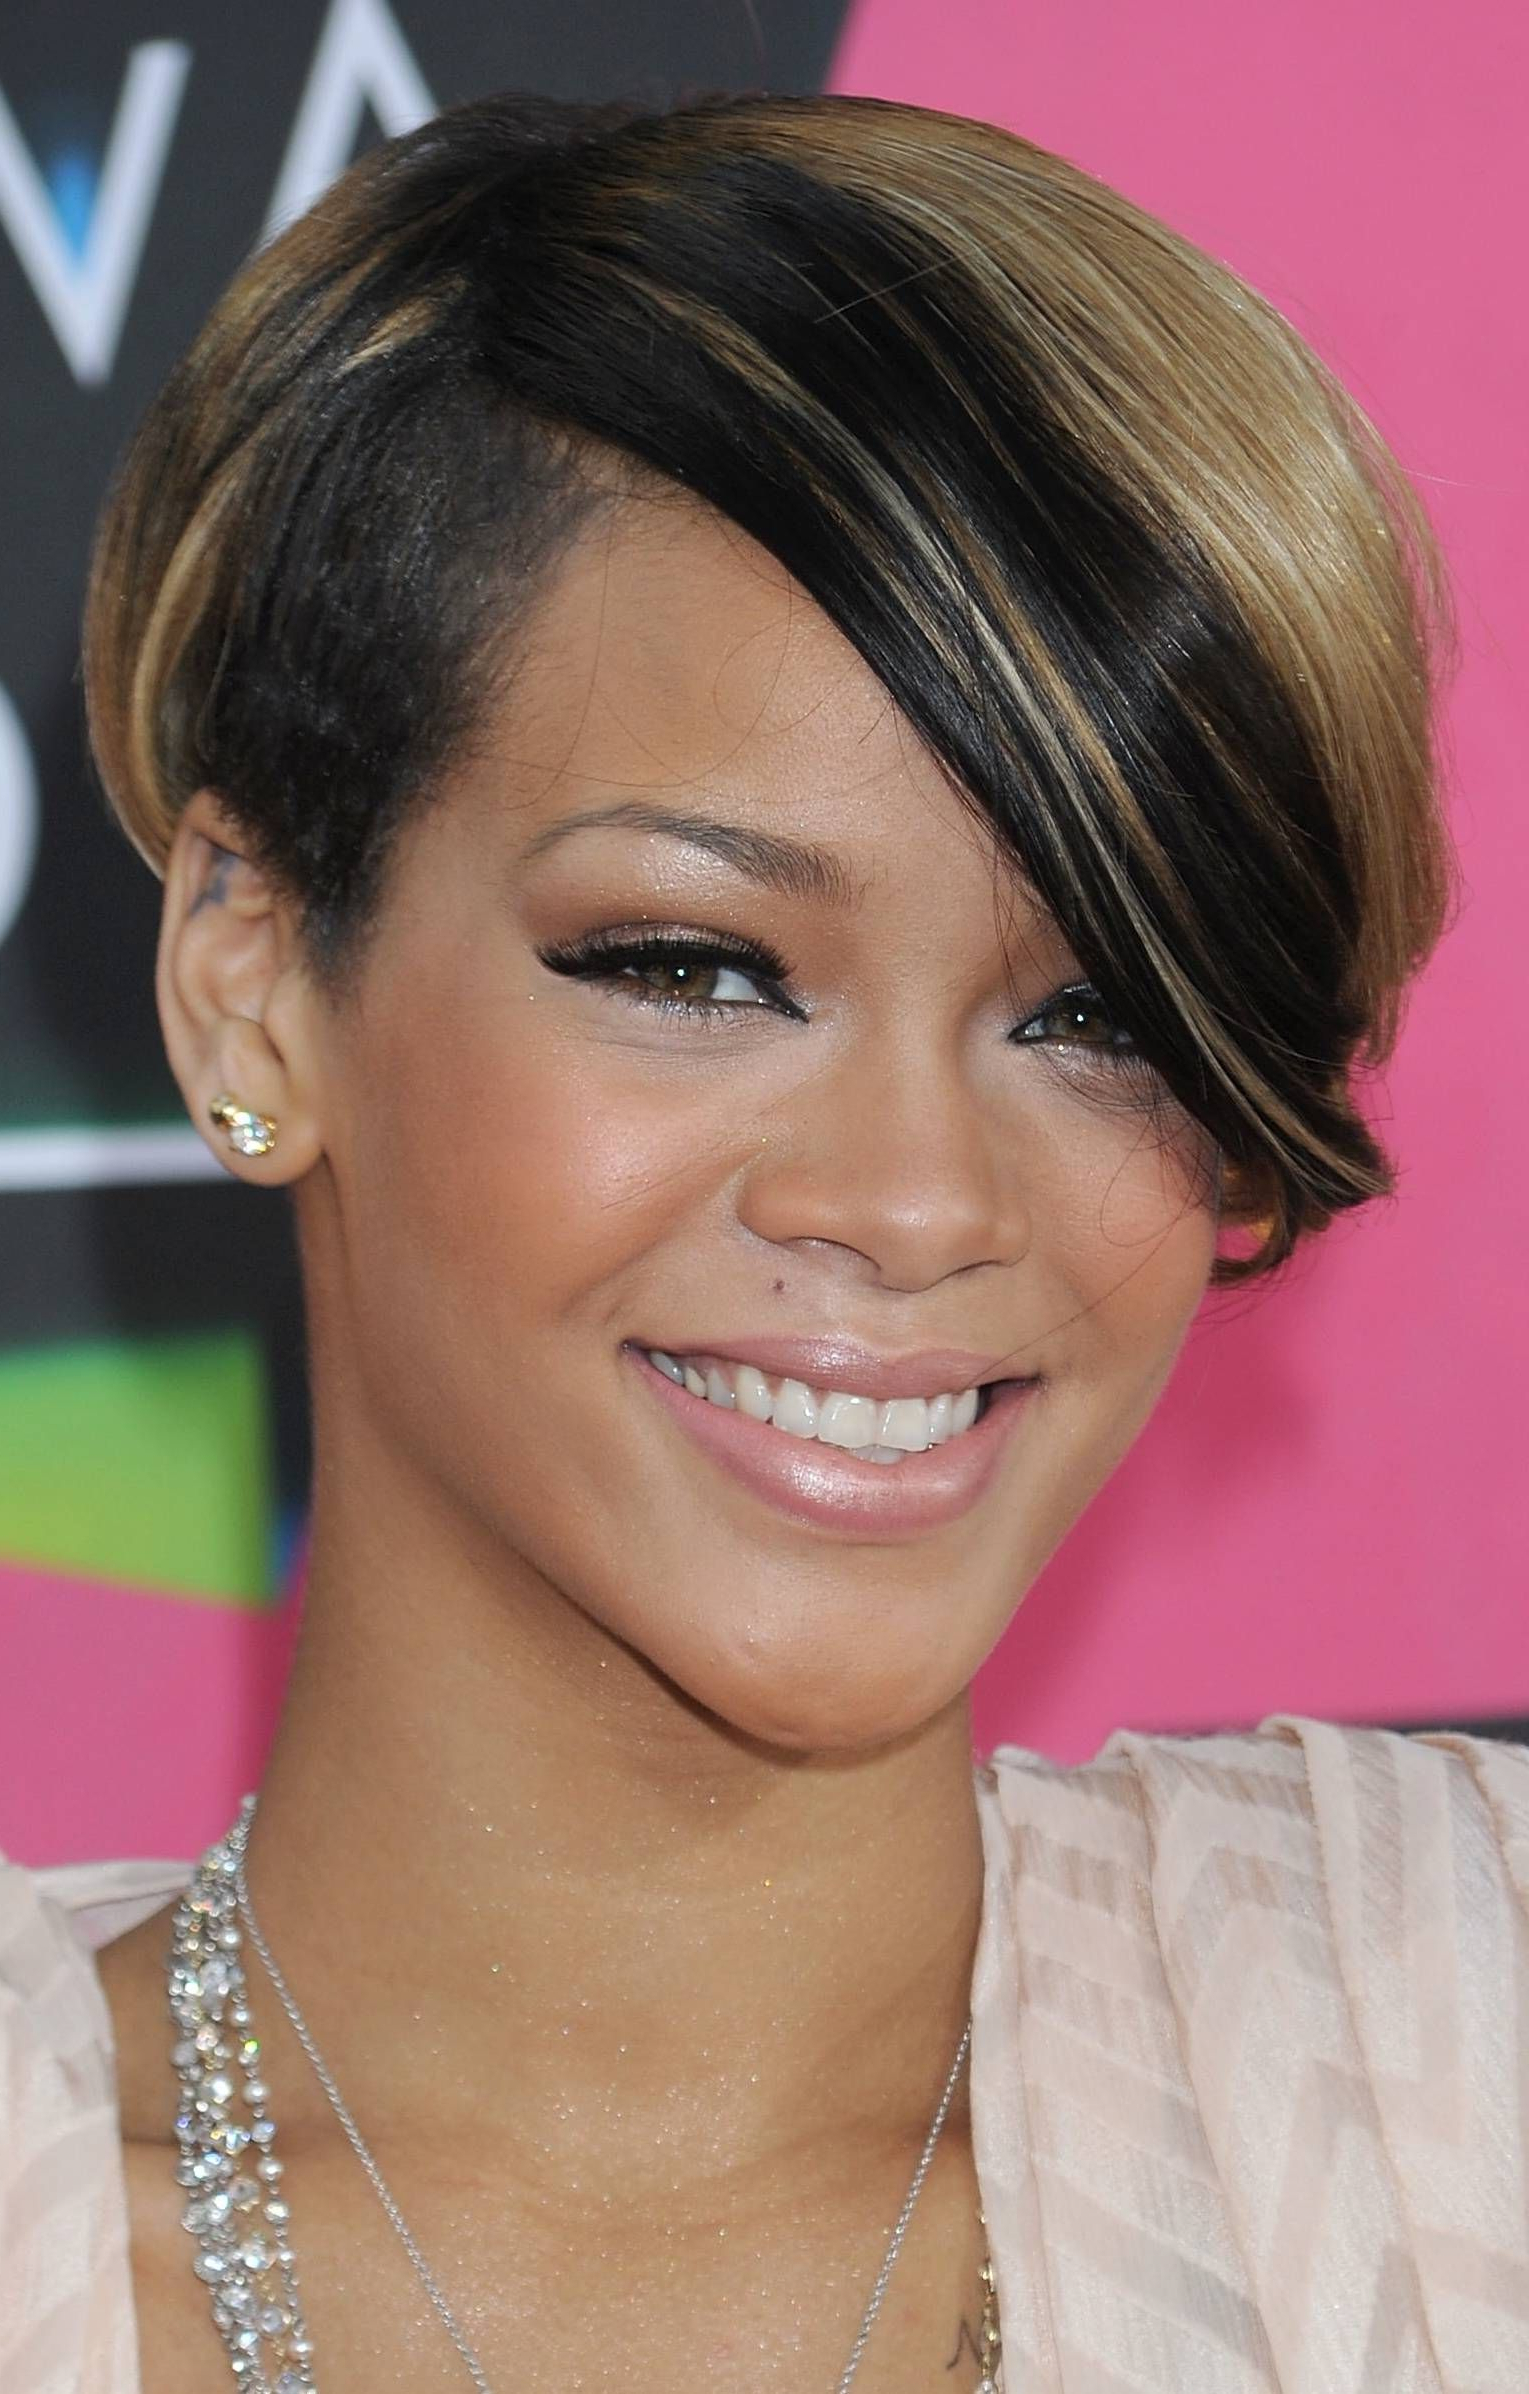 Gorgeous Short, Black Hairstyles | Hair | Pinterest | Hair Styles Intended For Black Short Haircuts For Round Faces (Gallery 2 of 25)